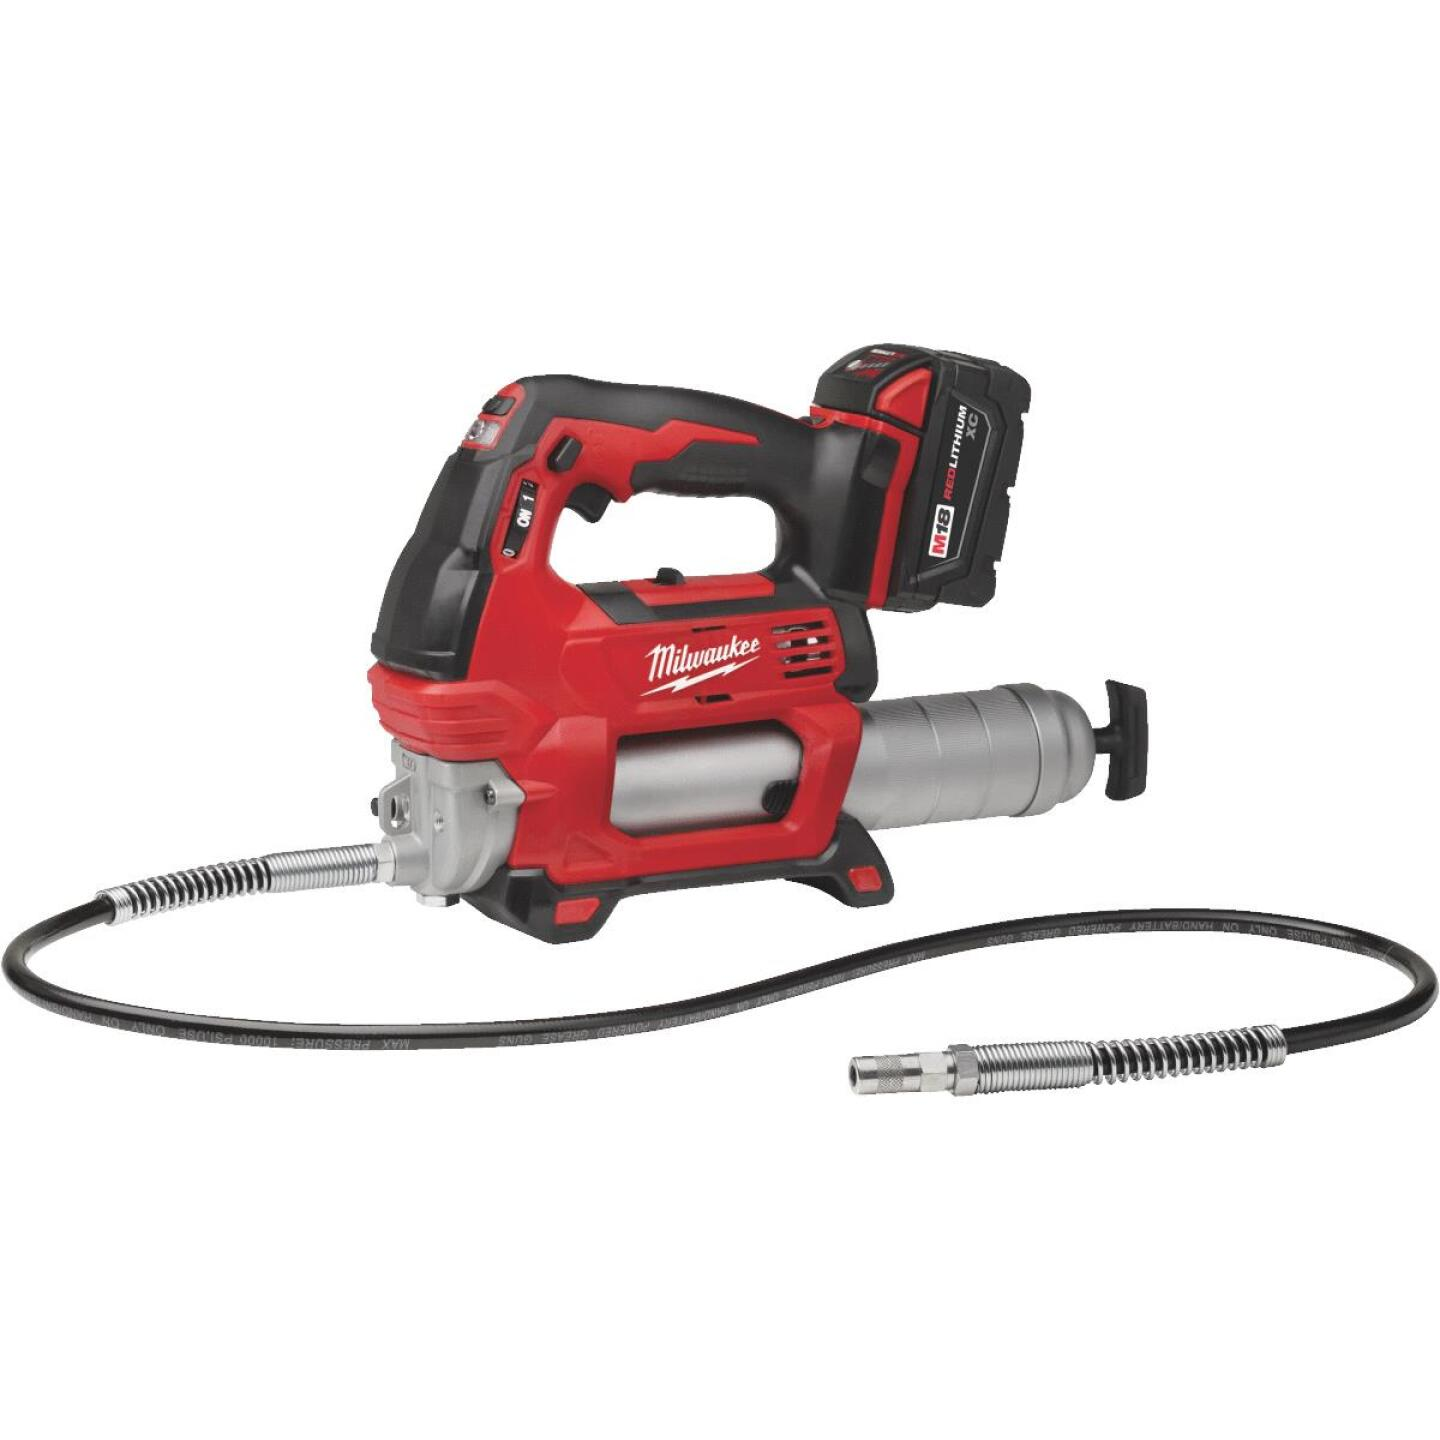 Milwaukee M18 18 Volt Lithium-Ion 2-Speed Cordless Grease Gun (Bare Tool) Image 2